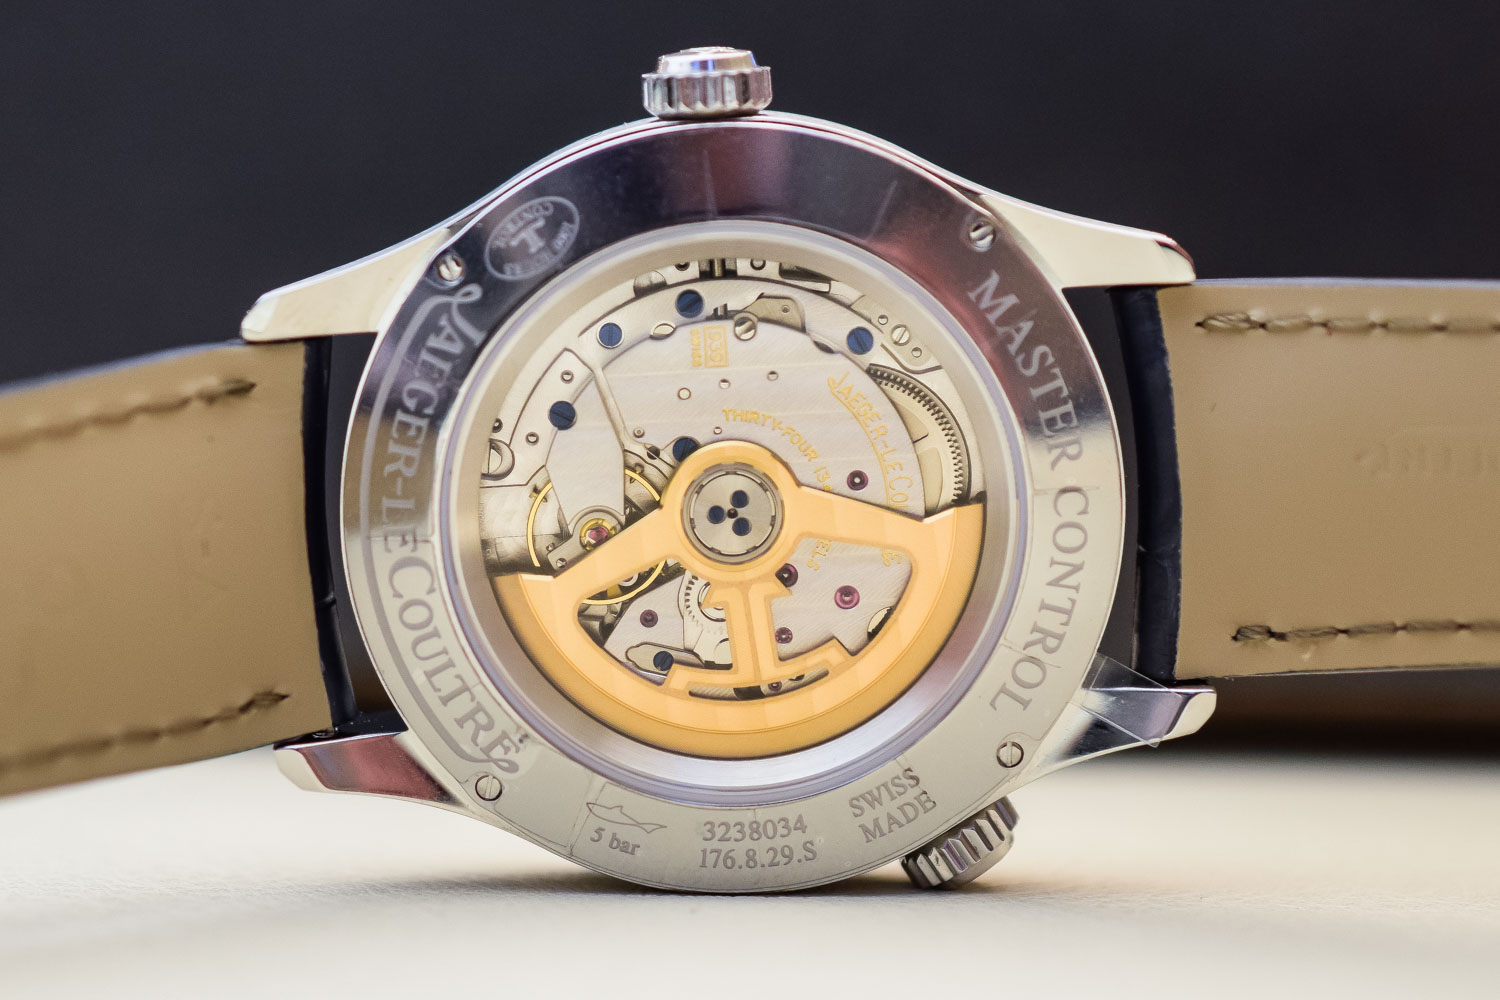 Jaeger-LeCoultre Master Control Collection Sector Dial